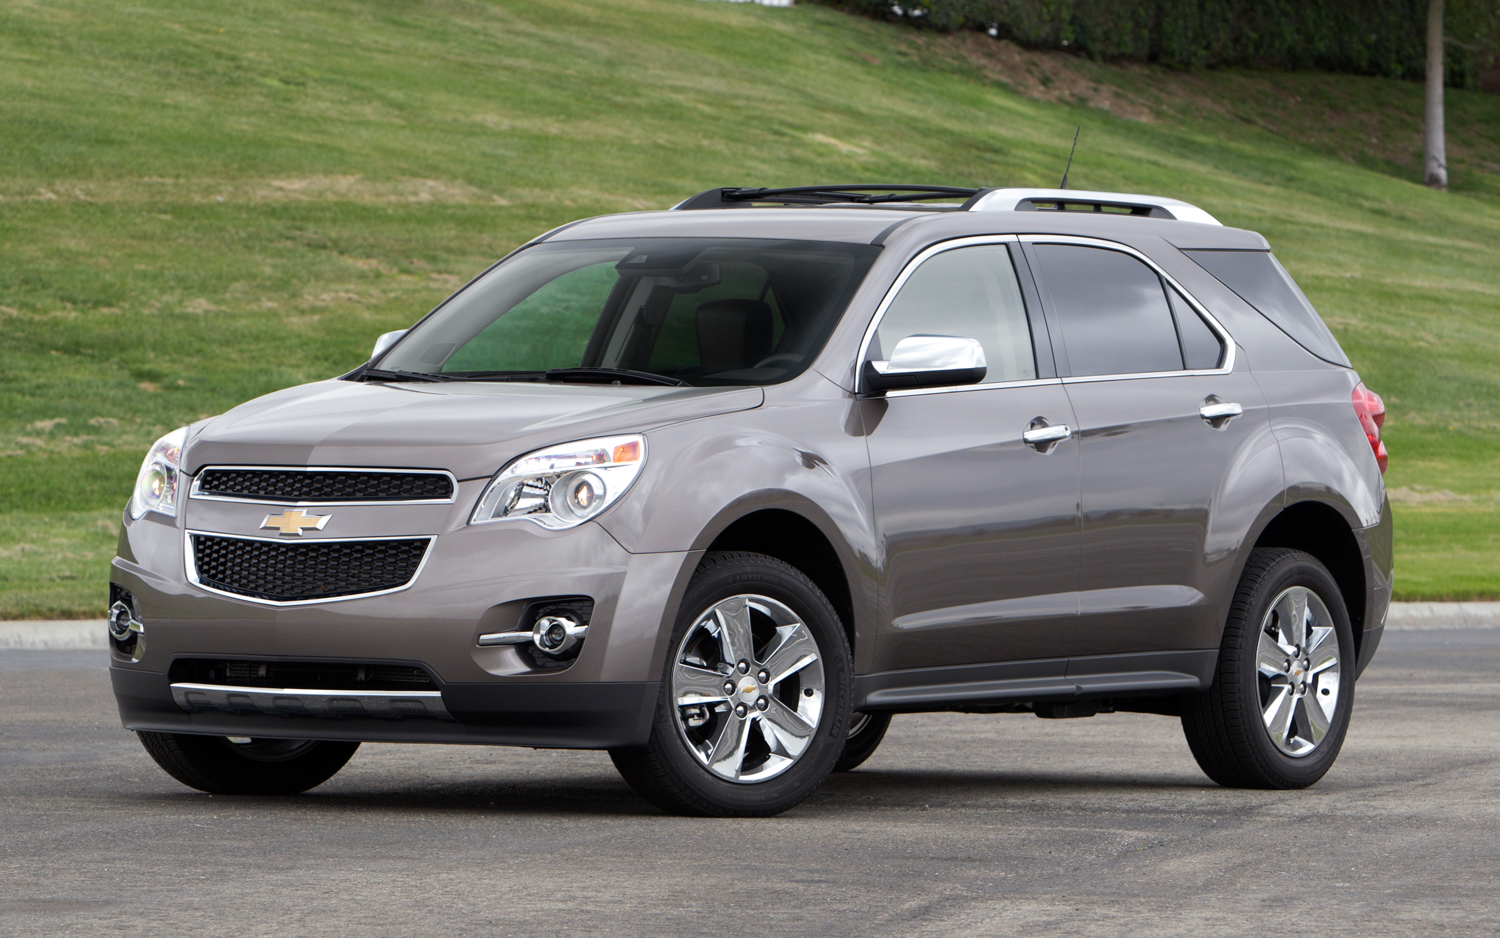 2012 chevrolet equinox pictures information and specs auto. Black Bedroom Furniture Sets. Home Design Ideas